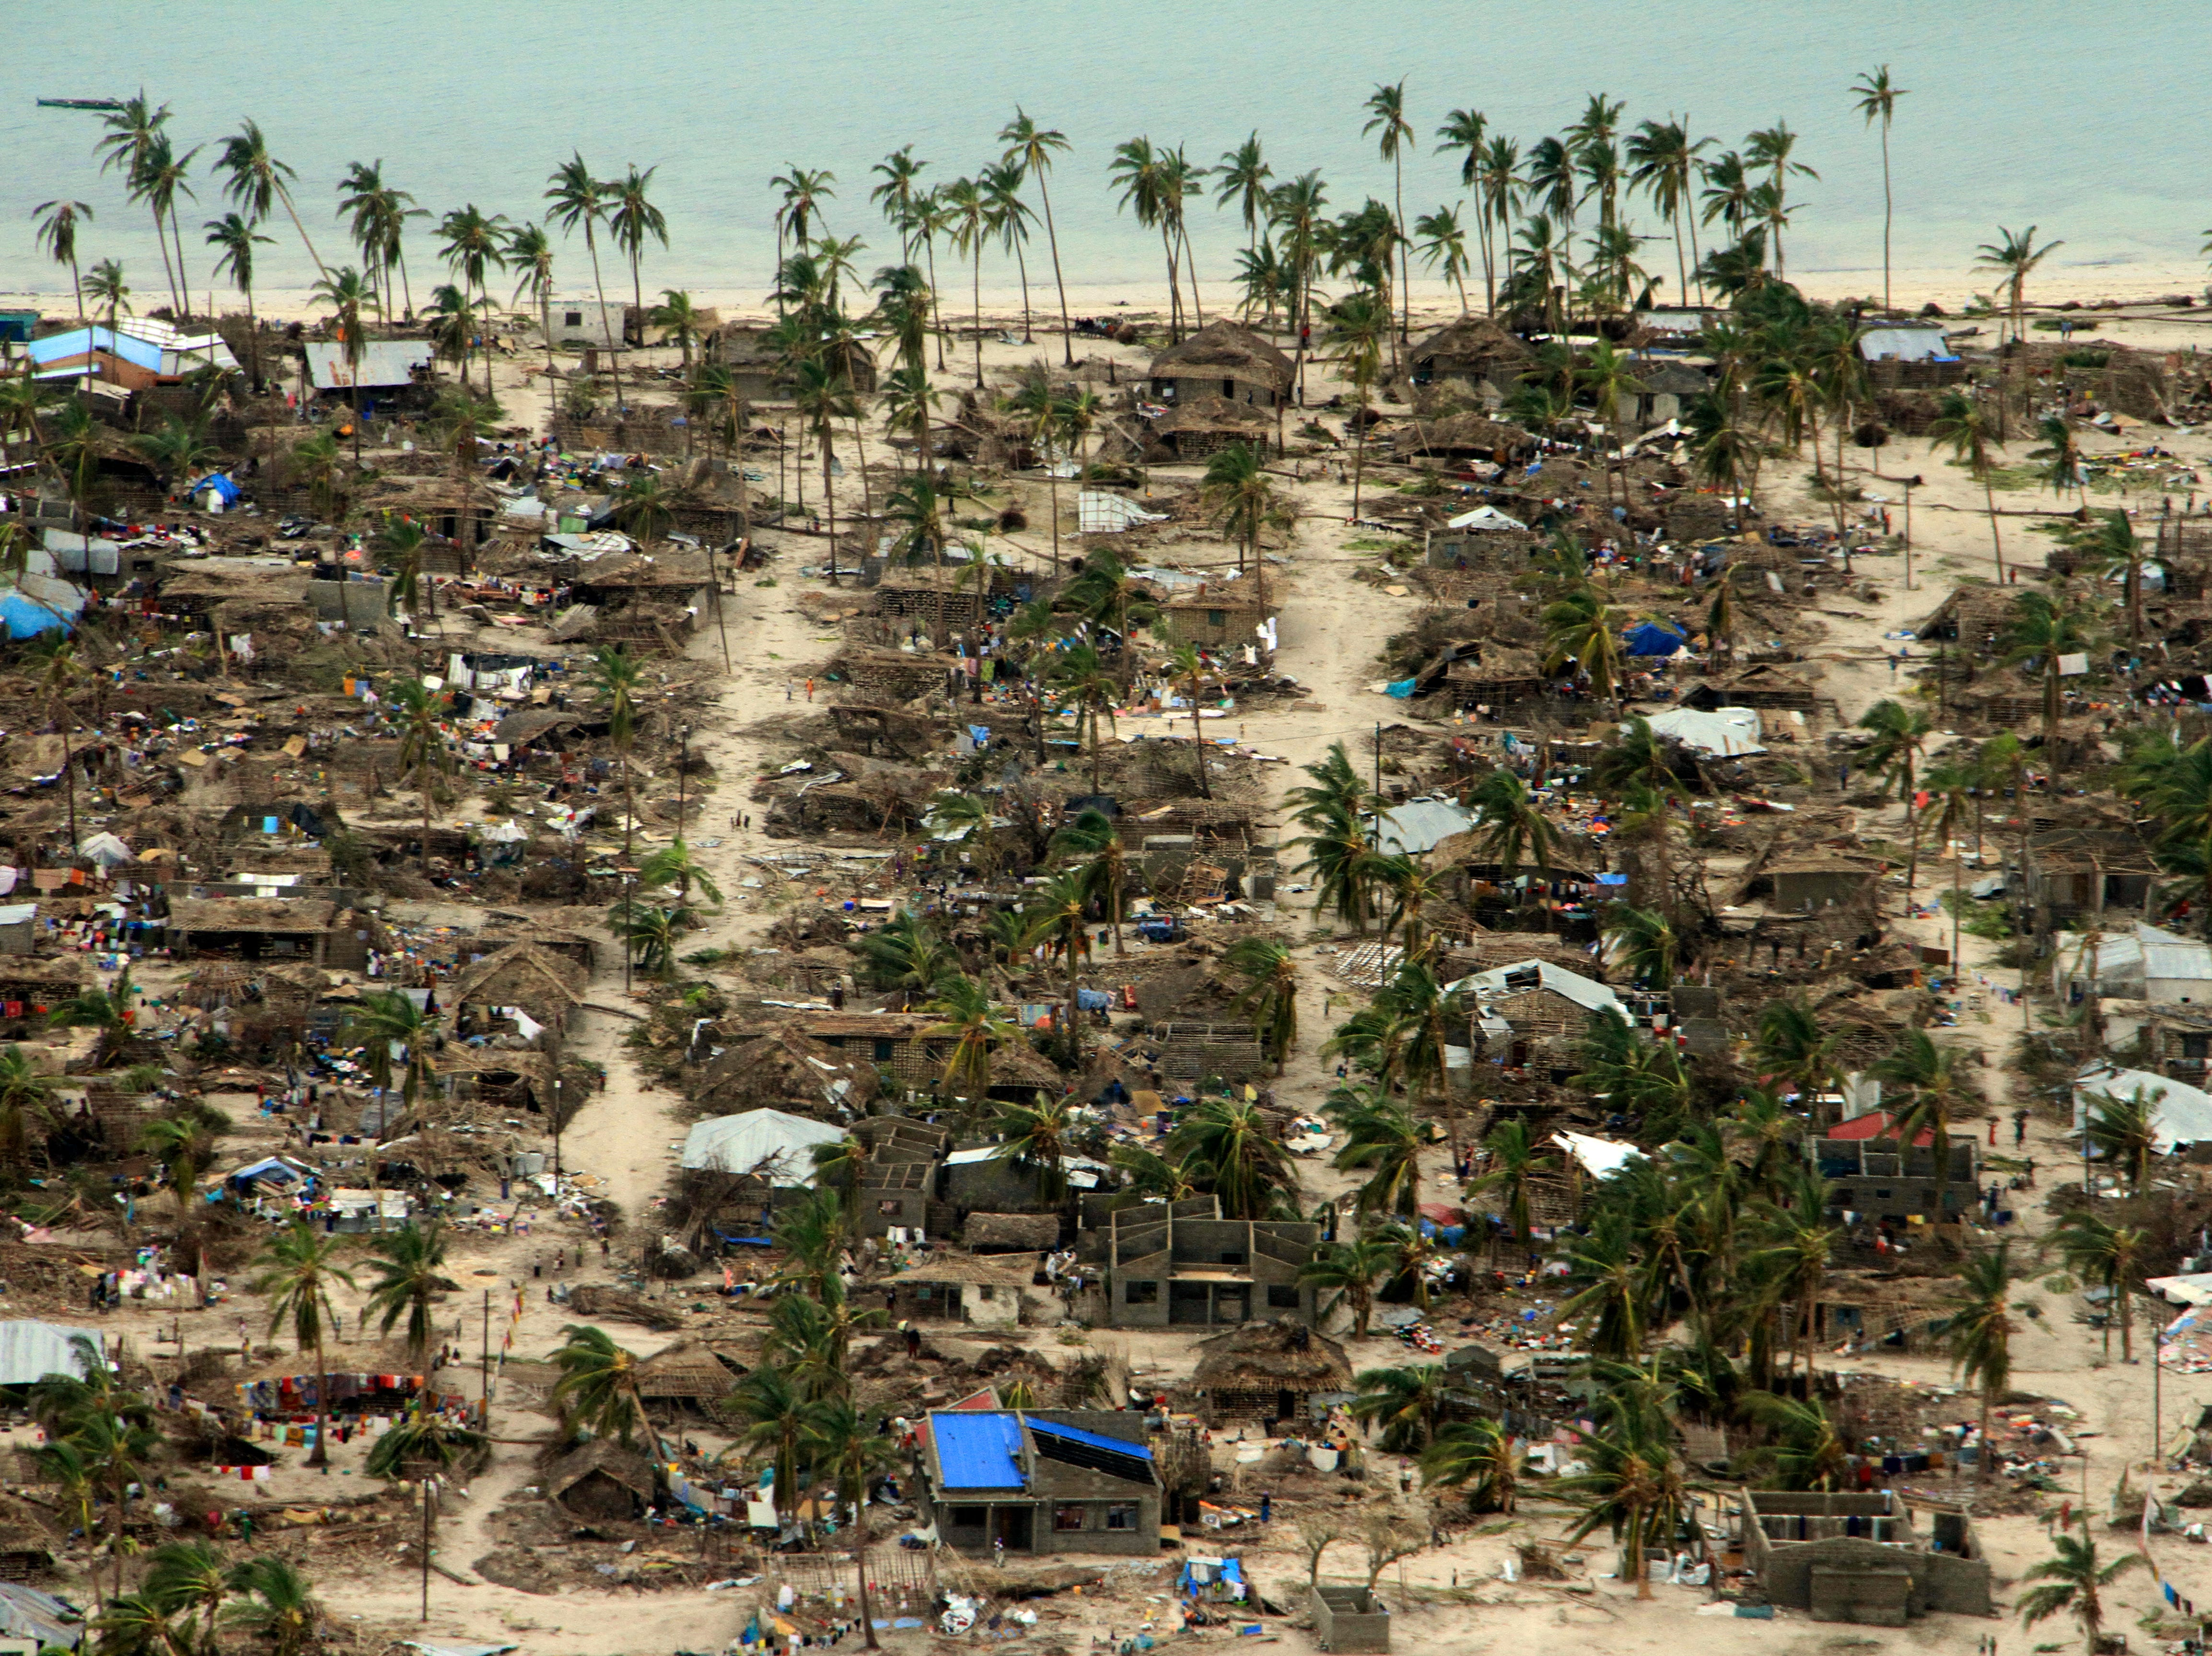 In this photo provided by the United Nations Office for the Coordination of Humanitarian Affairs (OCHA), badly damaged communities are seen from an aerial view, in Macomia district, Mozambique, on Saturday, April 27, 2019. Authorities have urged many residents to seek higher ground in the wake of Cyclone Kenneth as rain lashes the region.